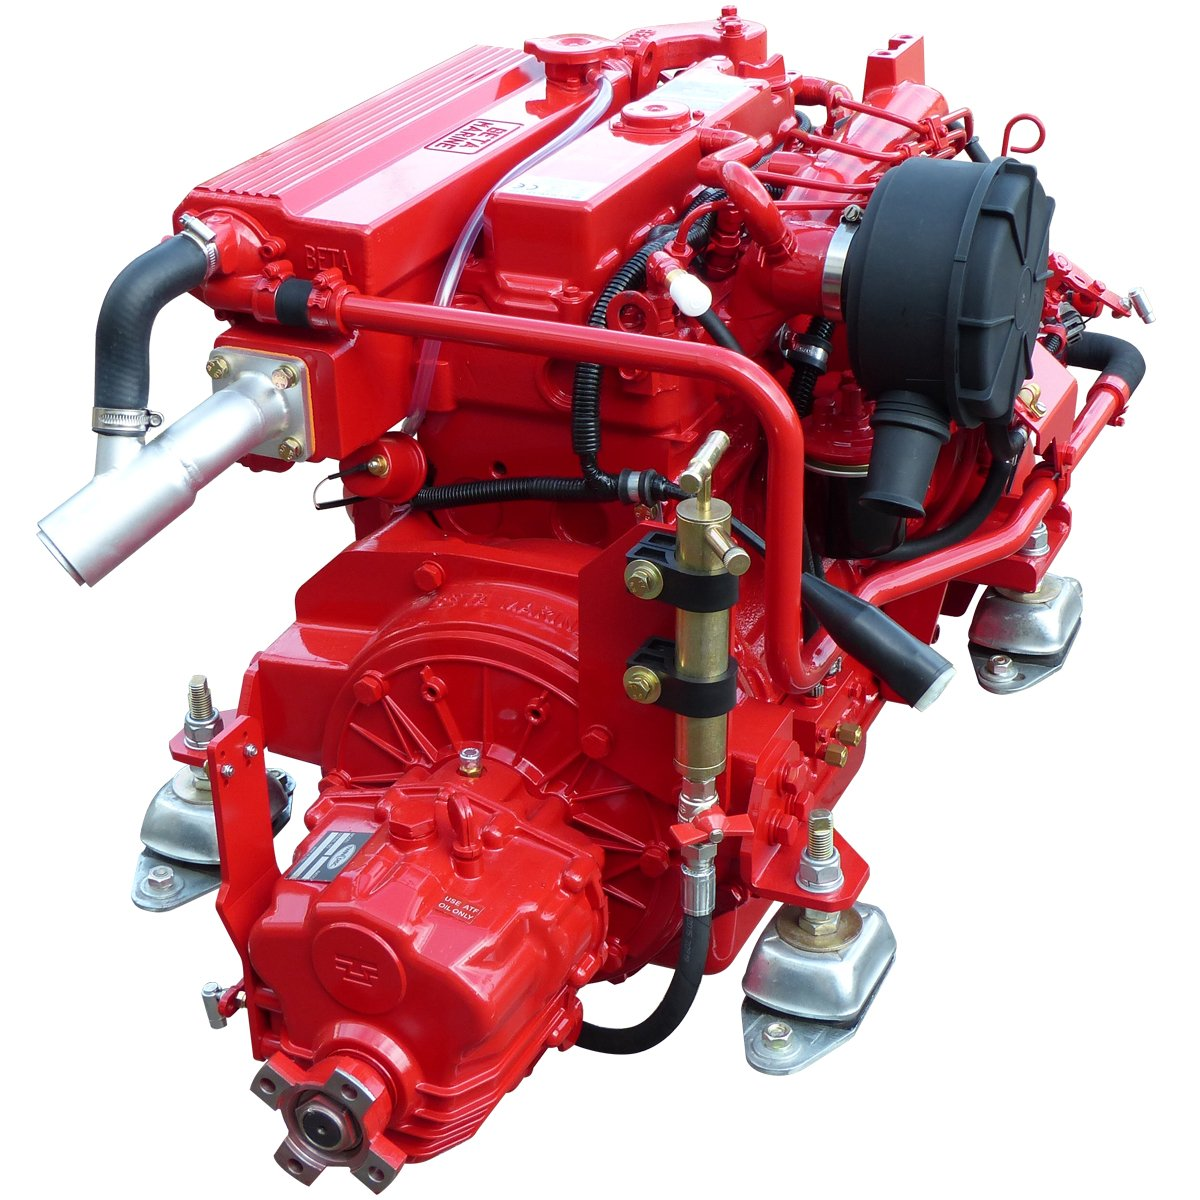 Beta Marine USA - marine diesel propulsion engines - Beta 43 heat exchanger engine